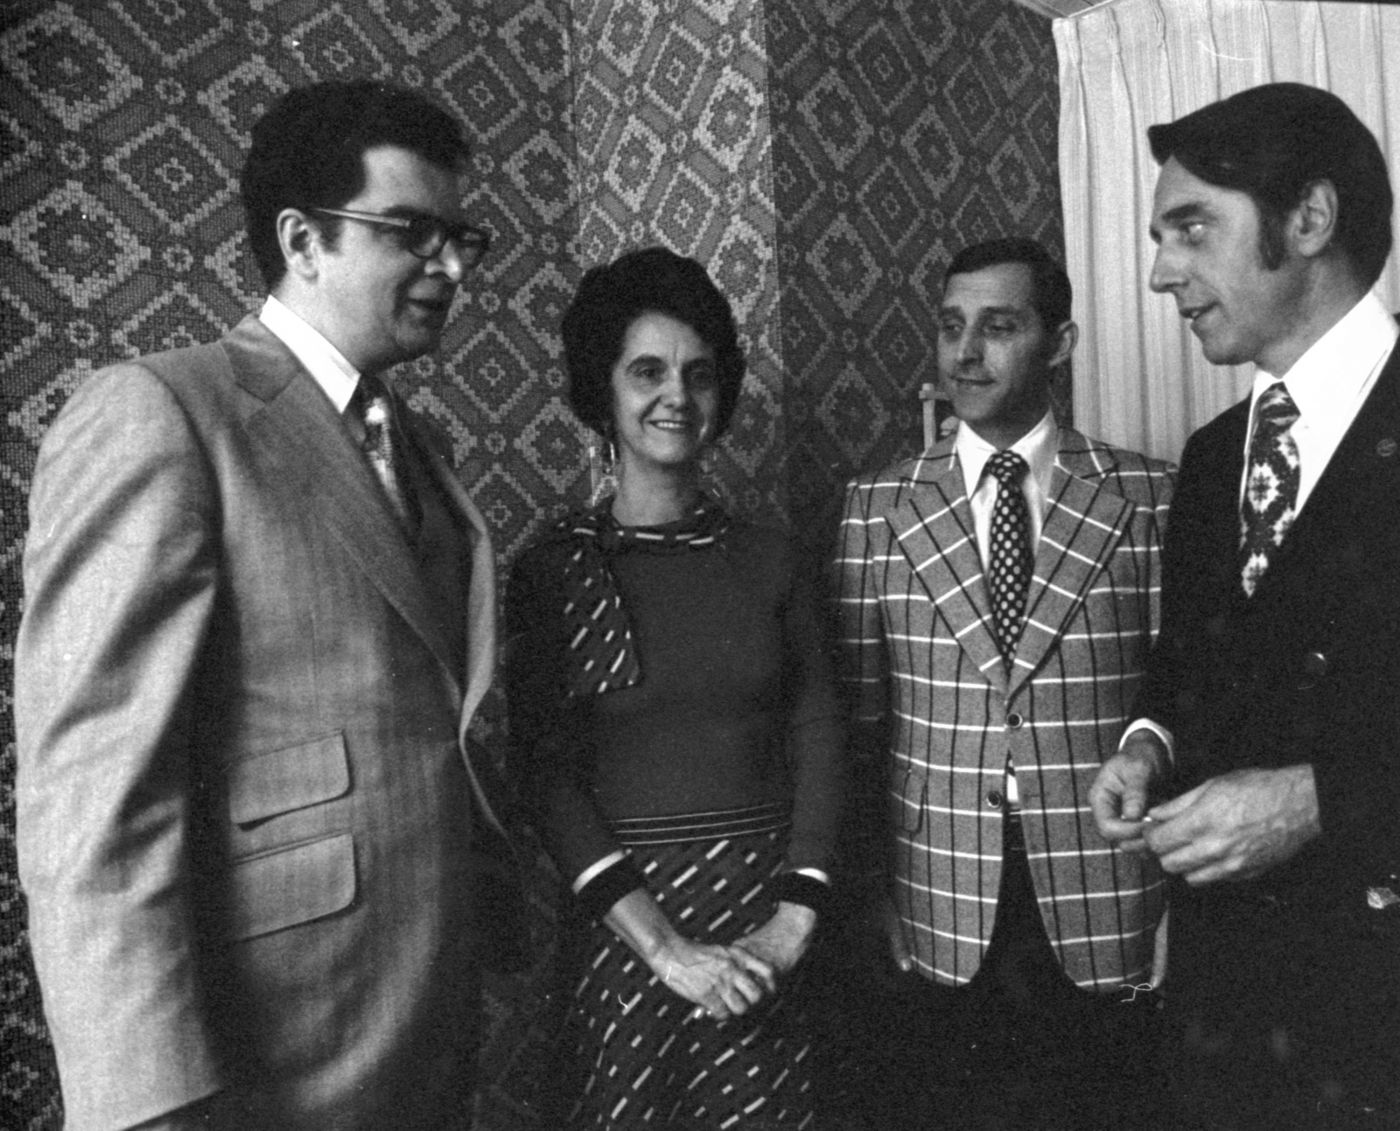 Black and white photograph of three men and a woman, middle-aged, talking. They are standing in a living room. The men wear jackets and ties; the woman wears a dress.